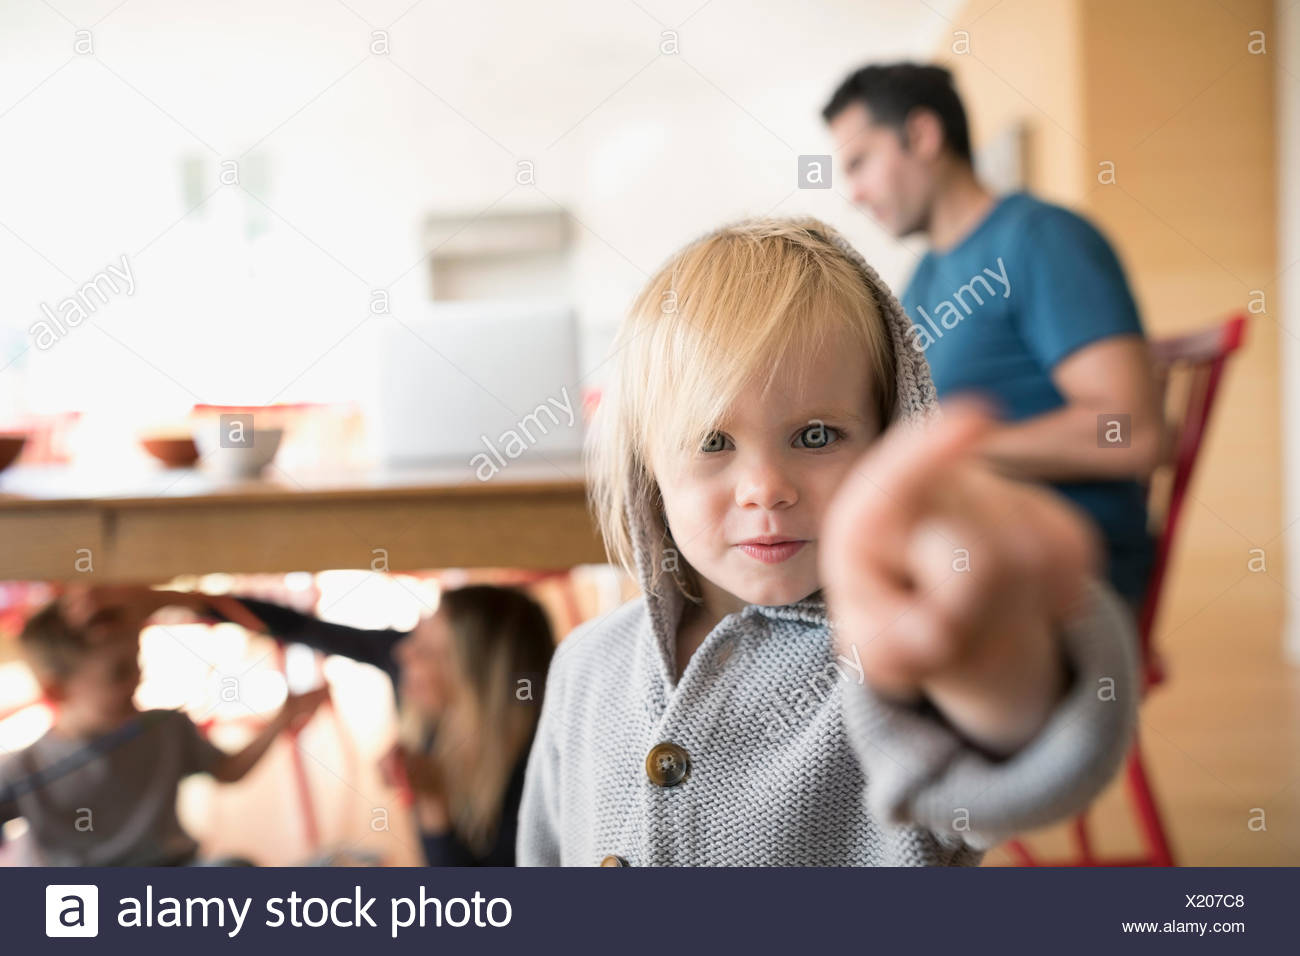 Portrait serious blonde toddler girl pointing - Stock Image